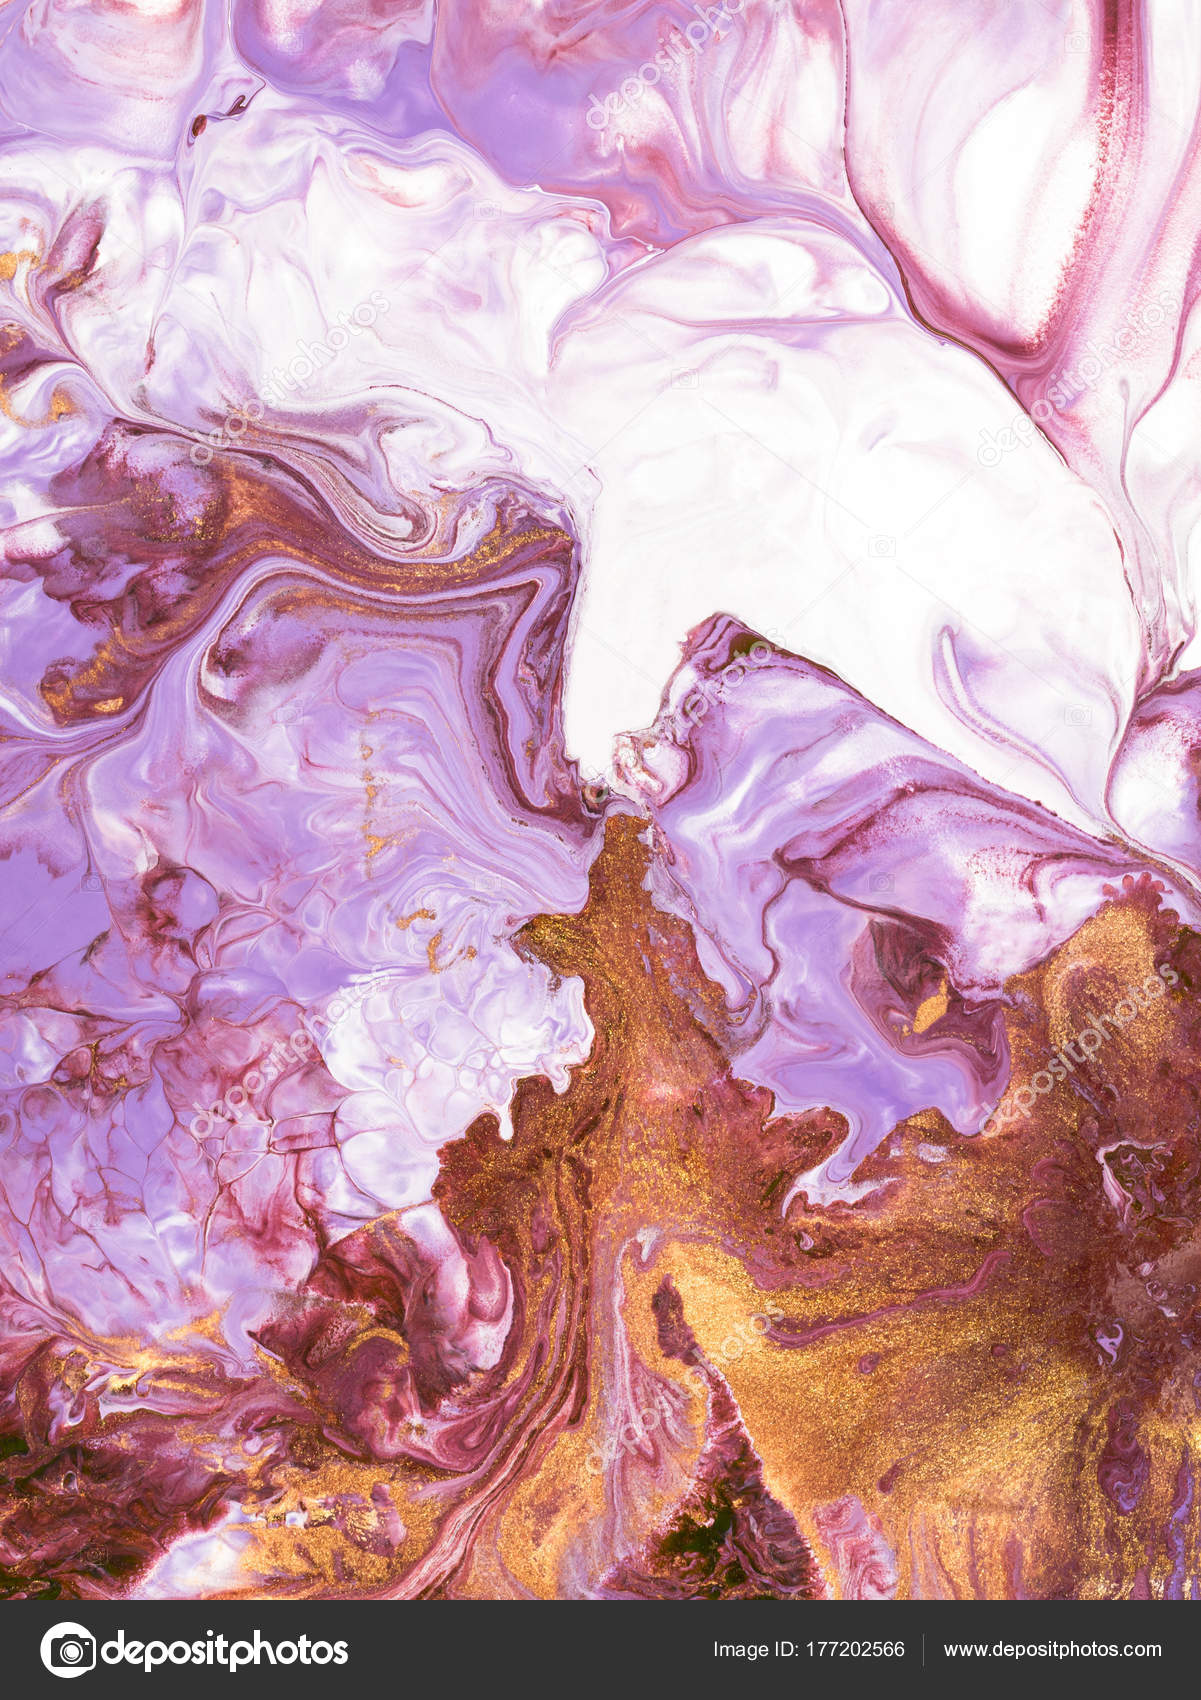 Background Marble Pink And Gold Pink With Gold Marble Abstract Hand Painted Background Stock Photo C Artlu 177202566